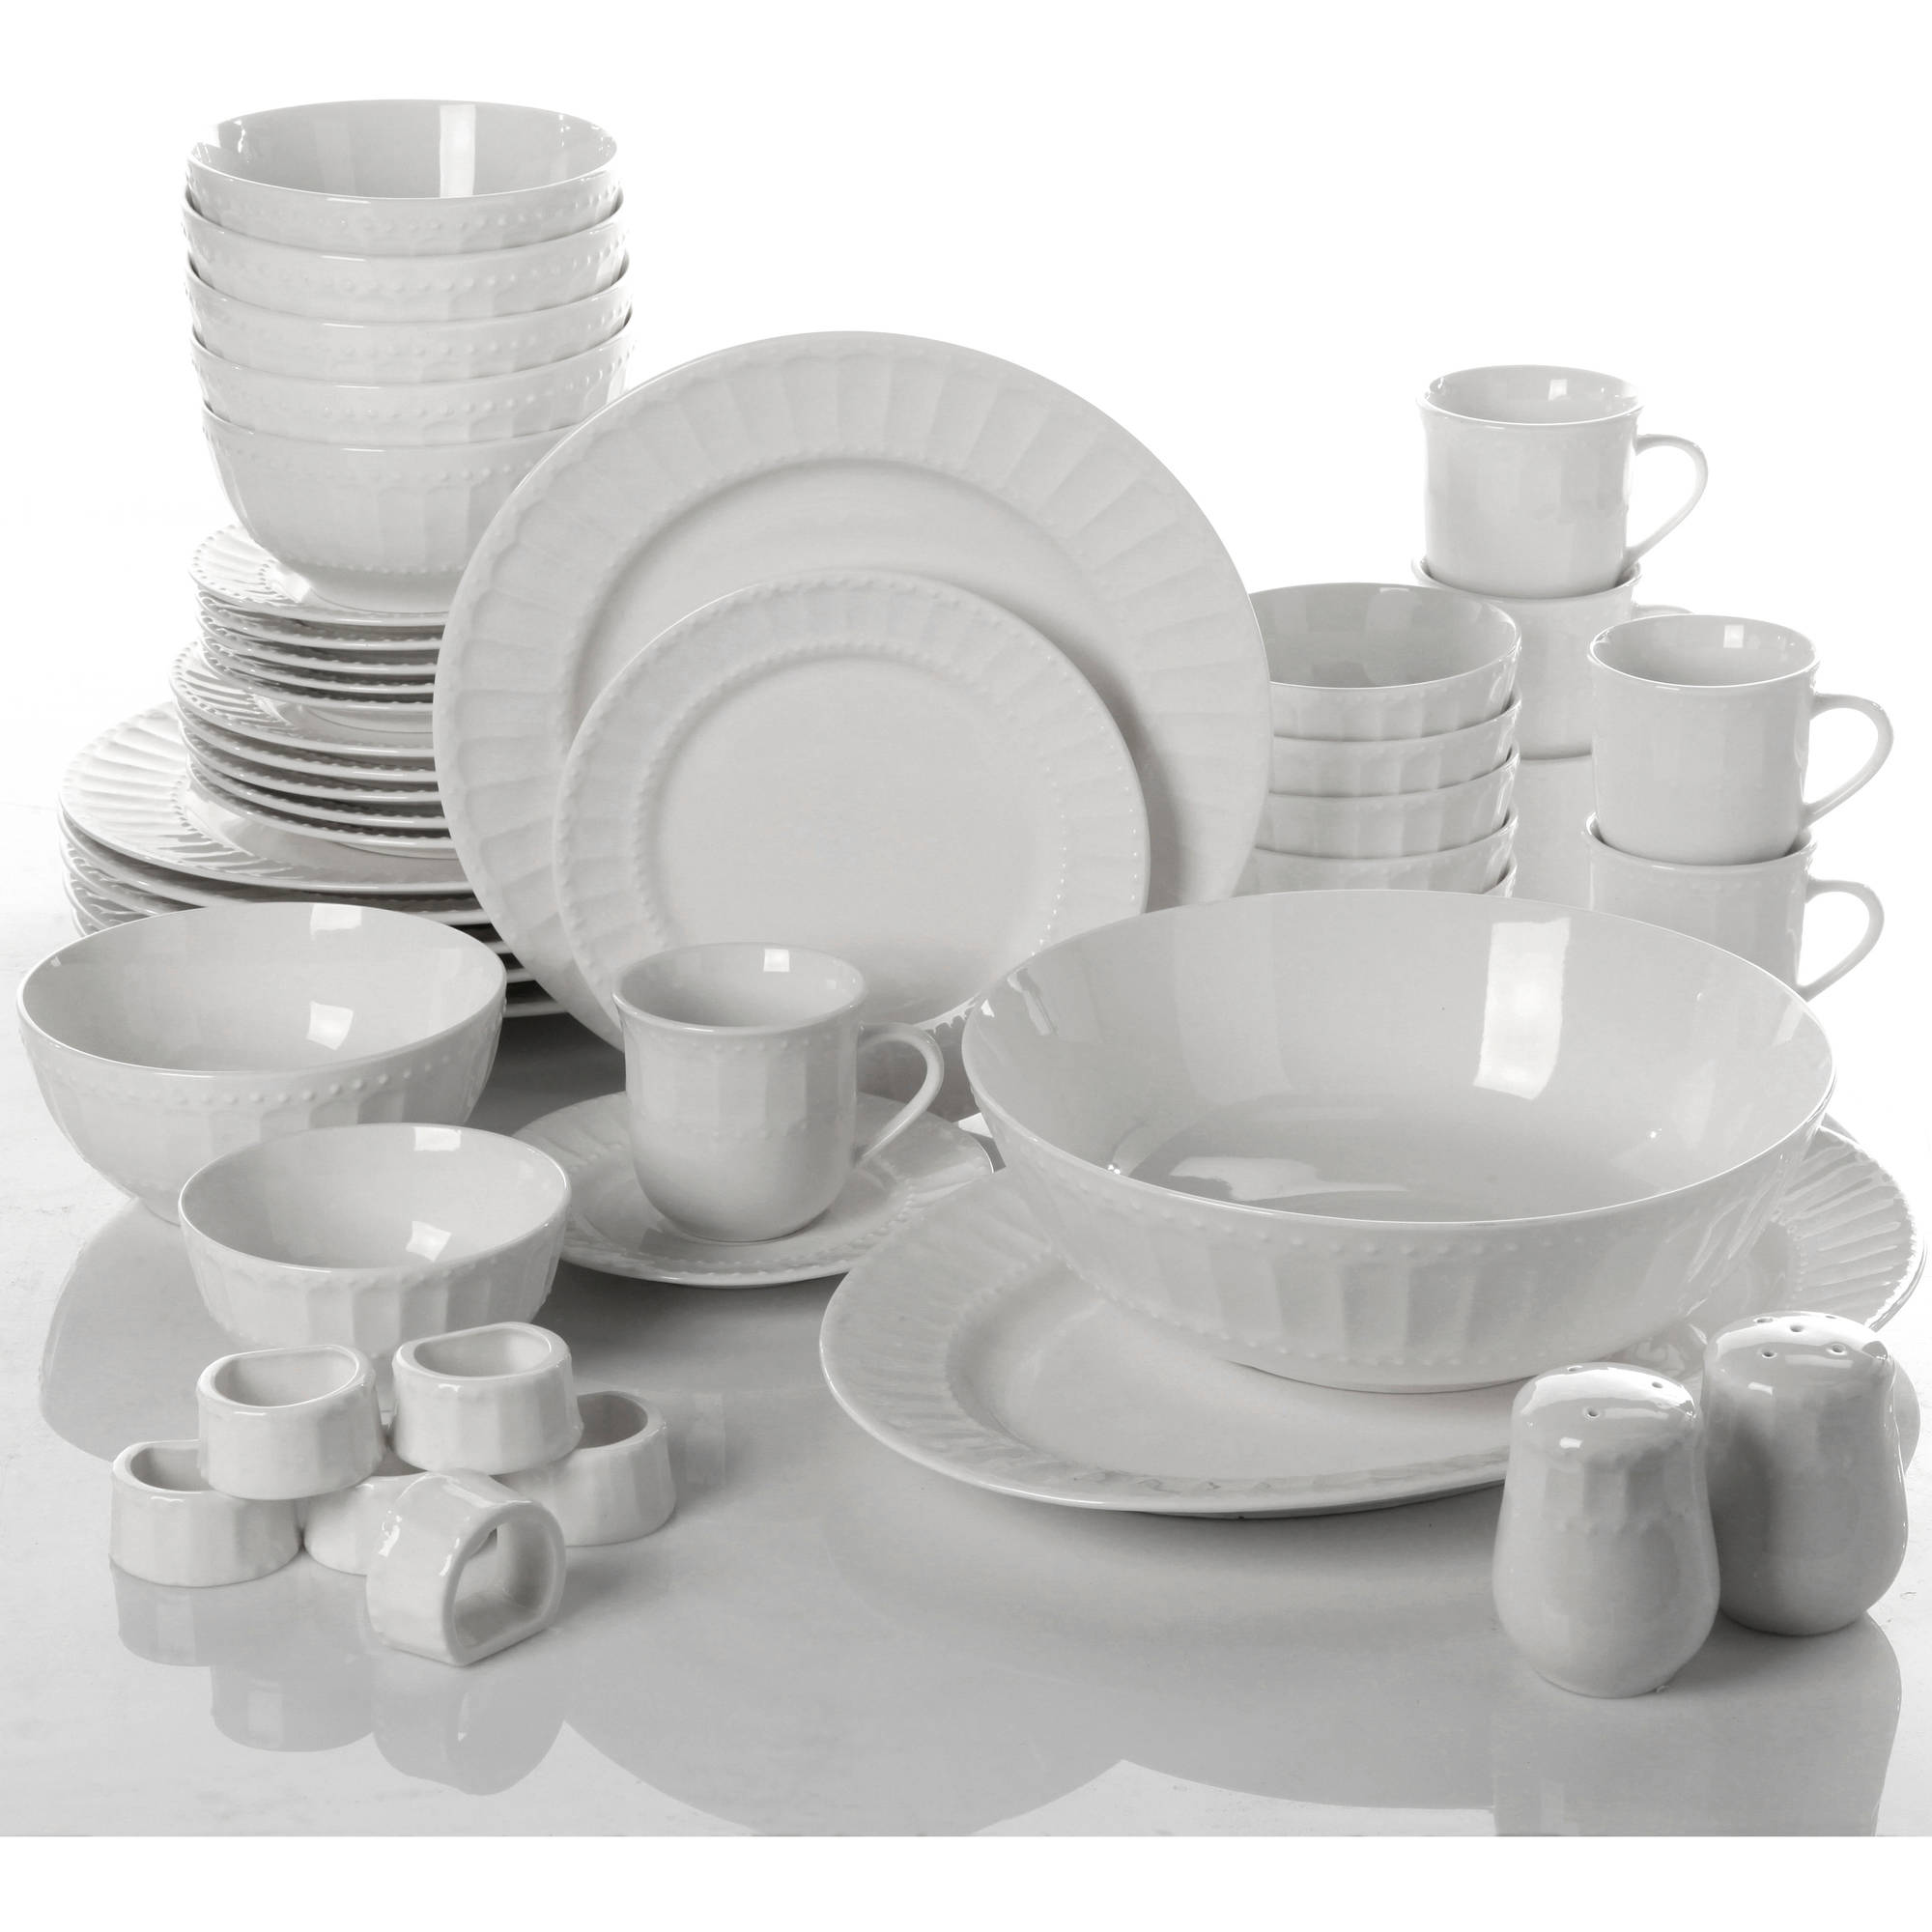 Gibson Home Regalia 46-Piece Dinnerware and Serveware Set Service for 6 - Walmart.com  sc 1 st  Walmart : gibson china dinnerware - Pezcame.Com